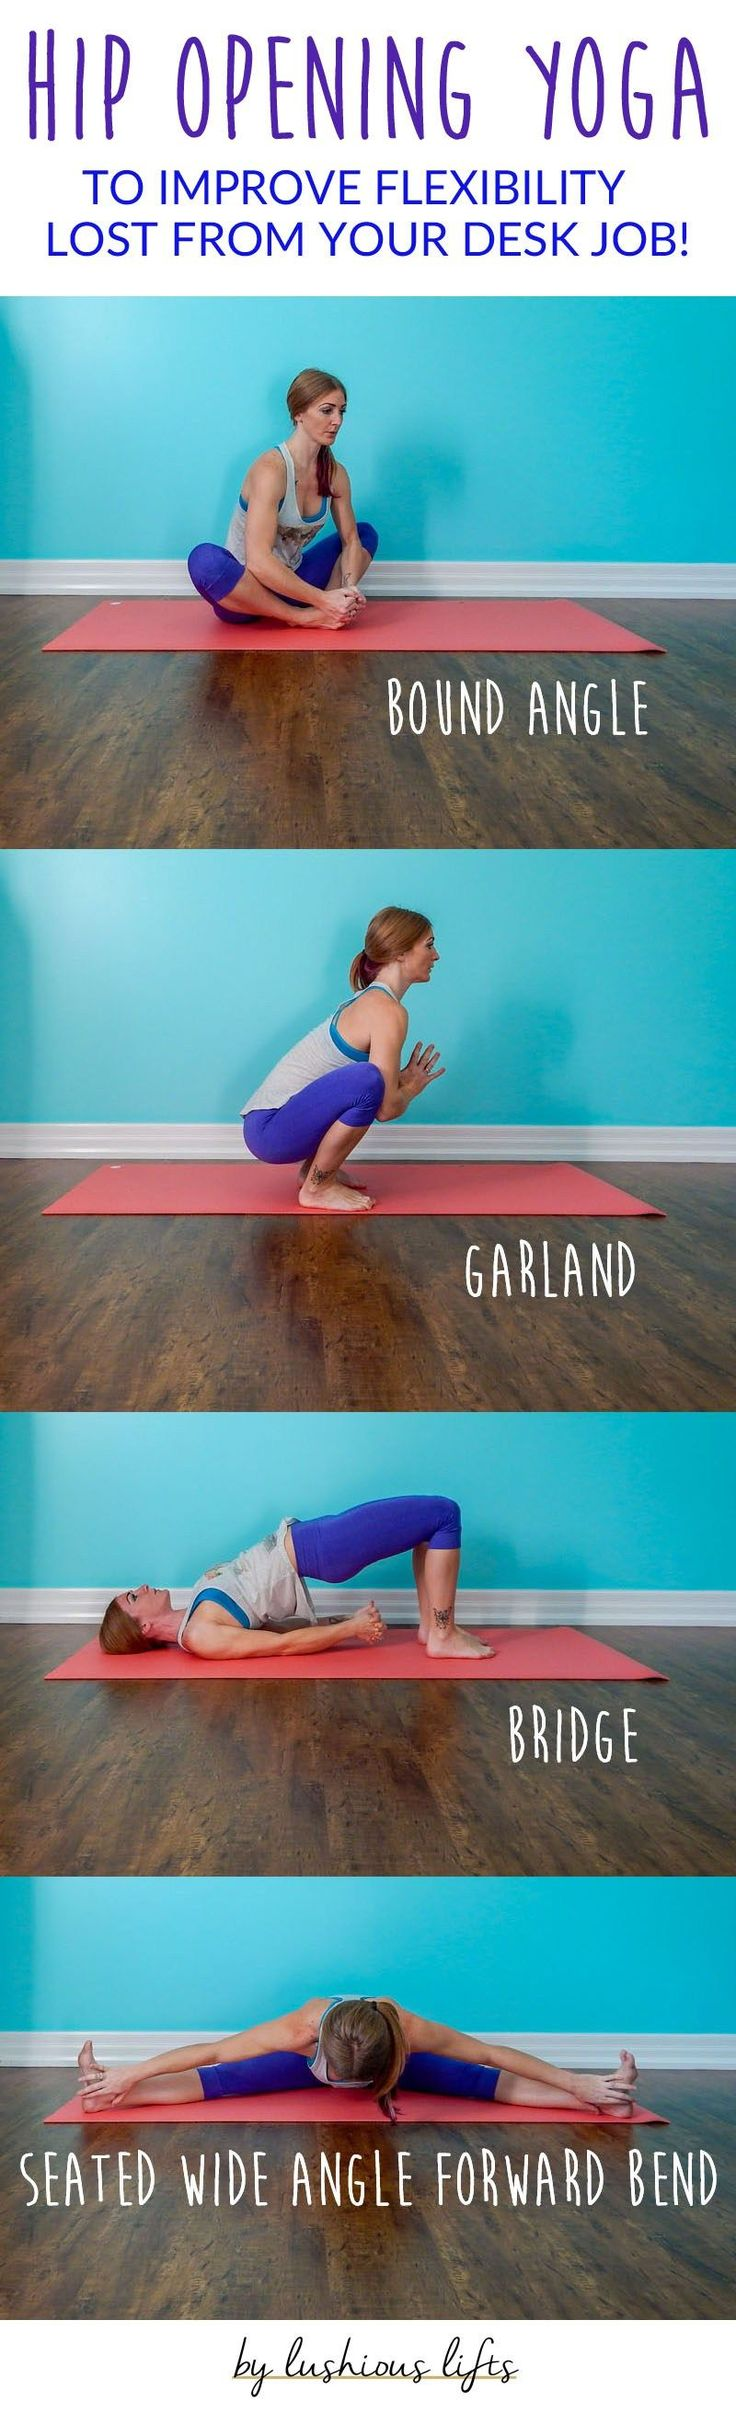 Hip Opening Yoga Poses to Improve Flexibility || lushiousLIFTS.com